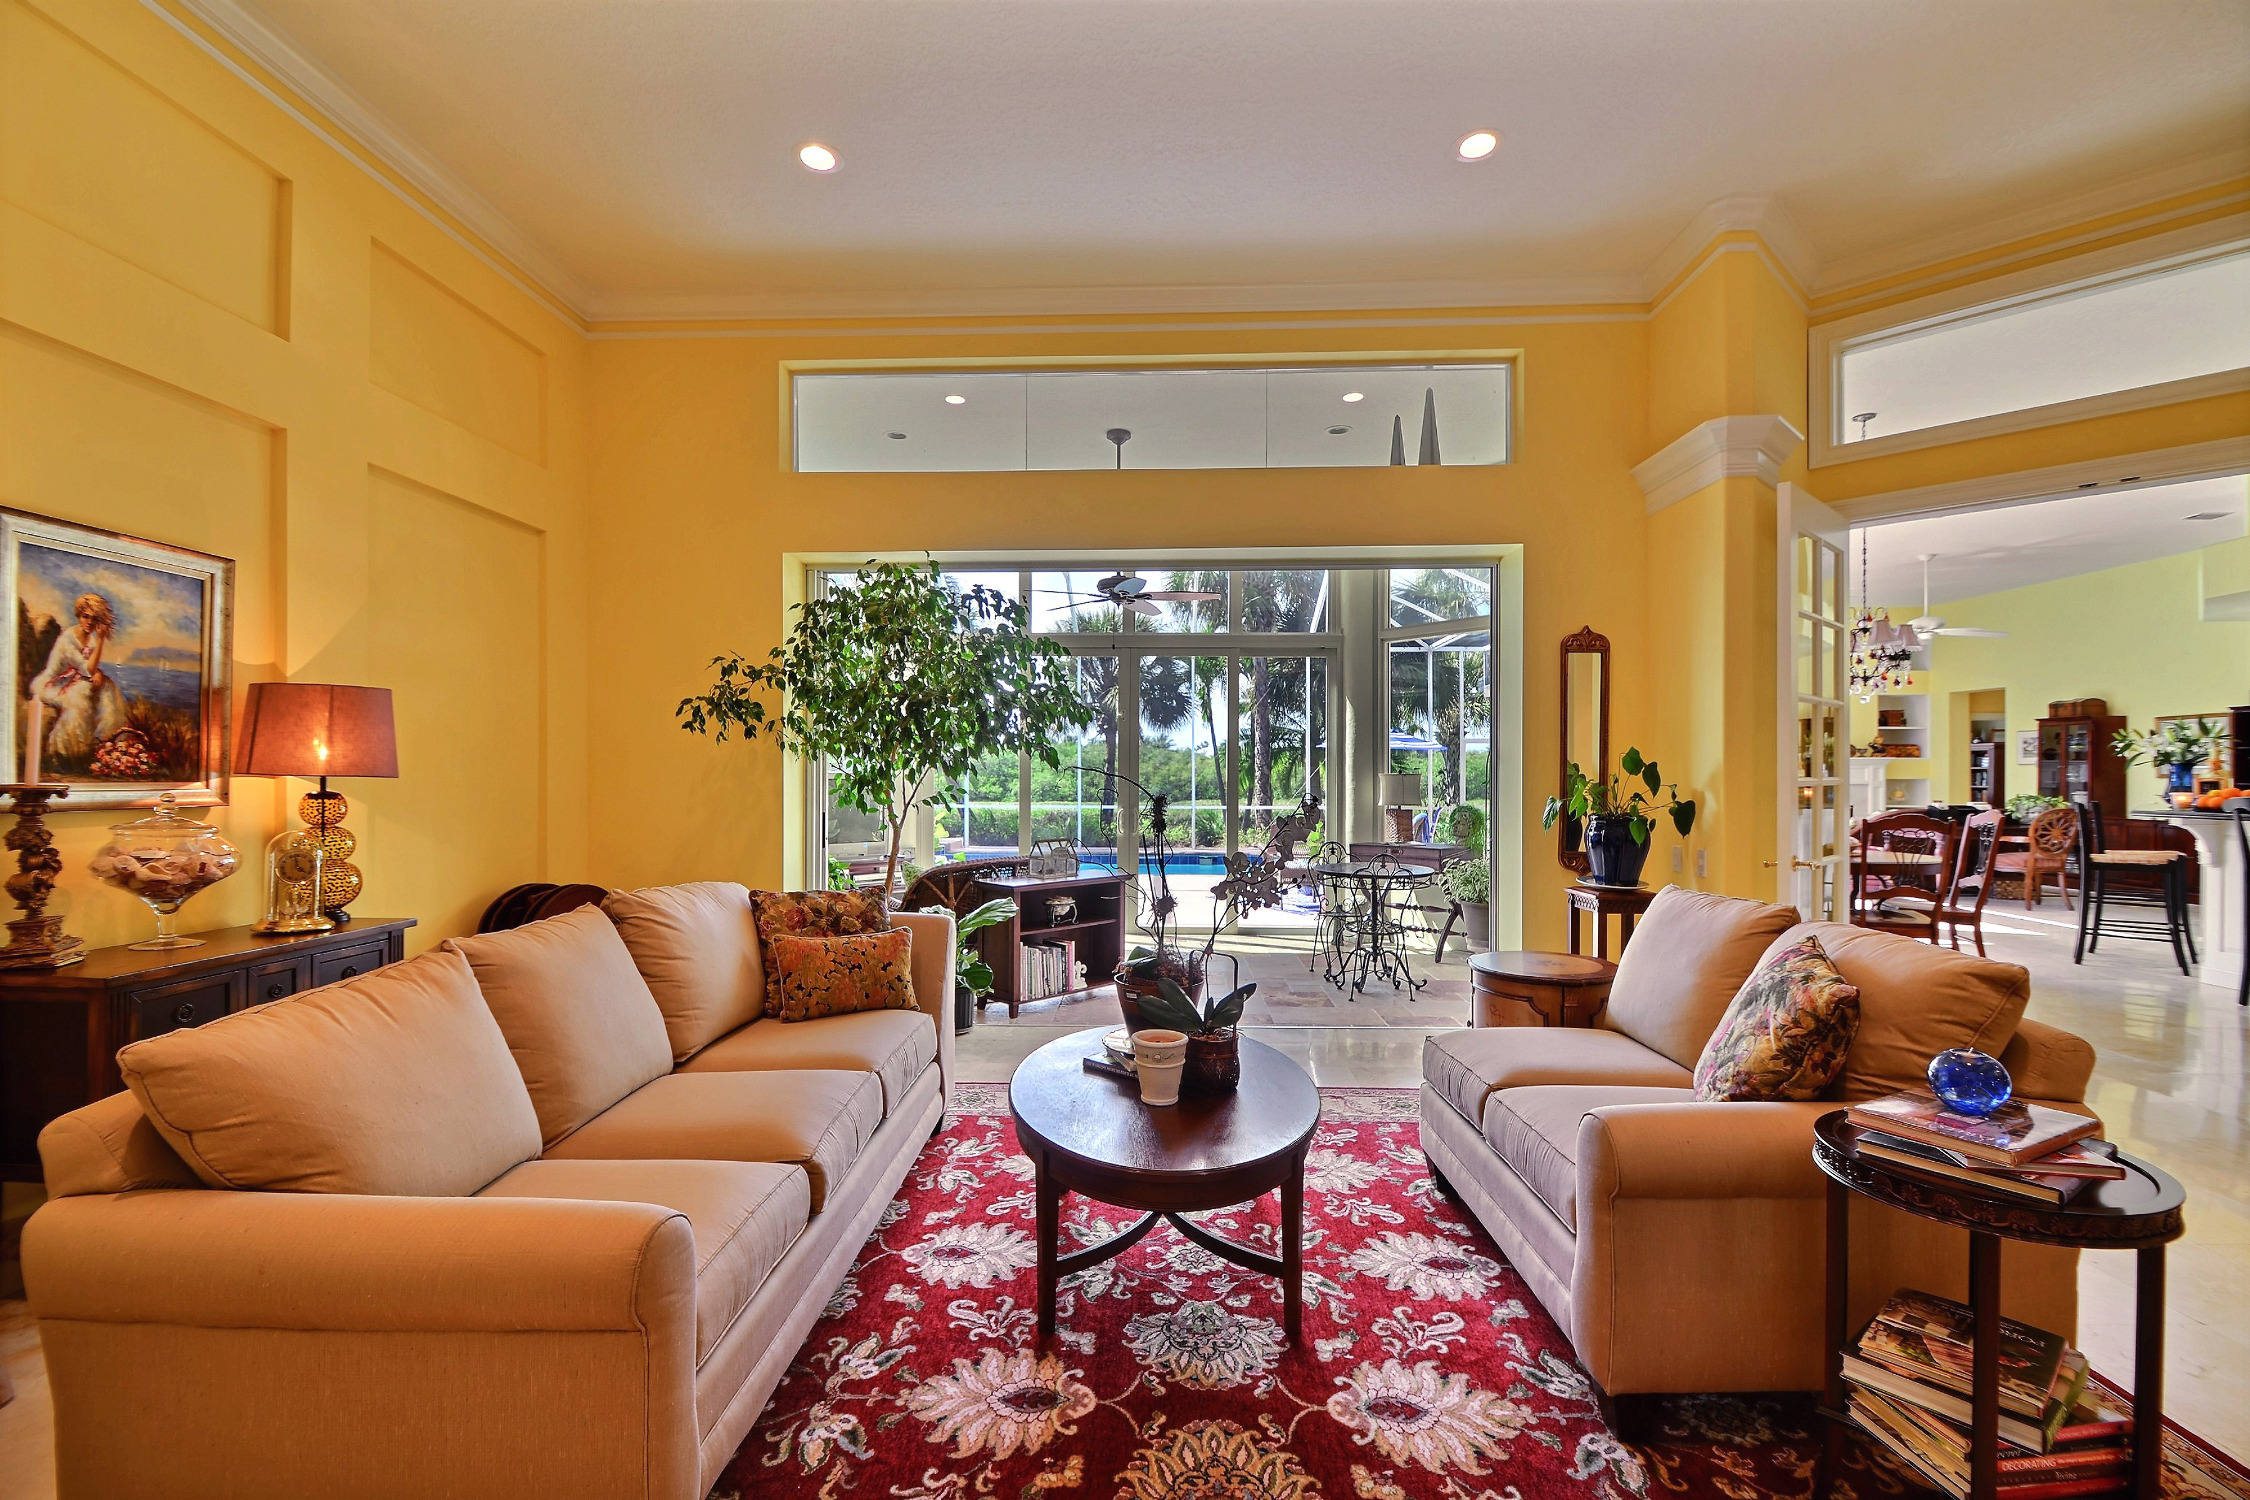 COUNTRY CLUB HOMES VERO BEACH FLORIDA GOLF AND THE